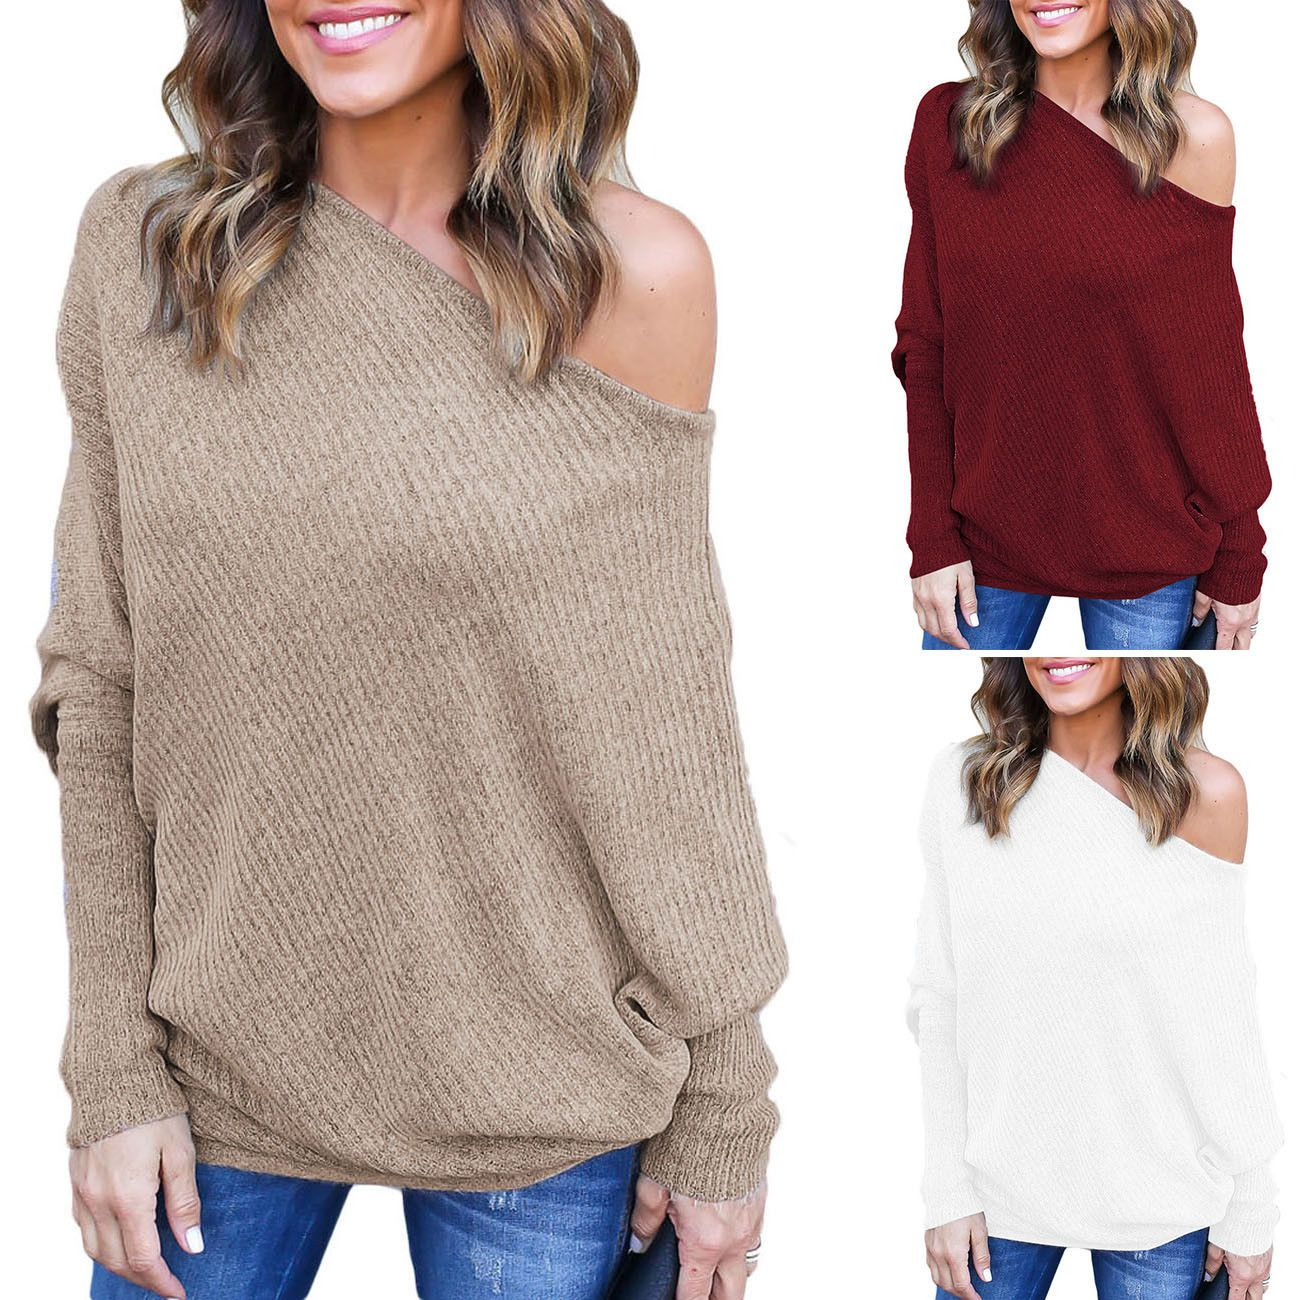 359c62c02c0444 Womens Off The Shoulder Chunky Knit Jumper Ladies Oversized Baggy Sweater  Top Gw Spring Skirts